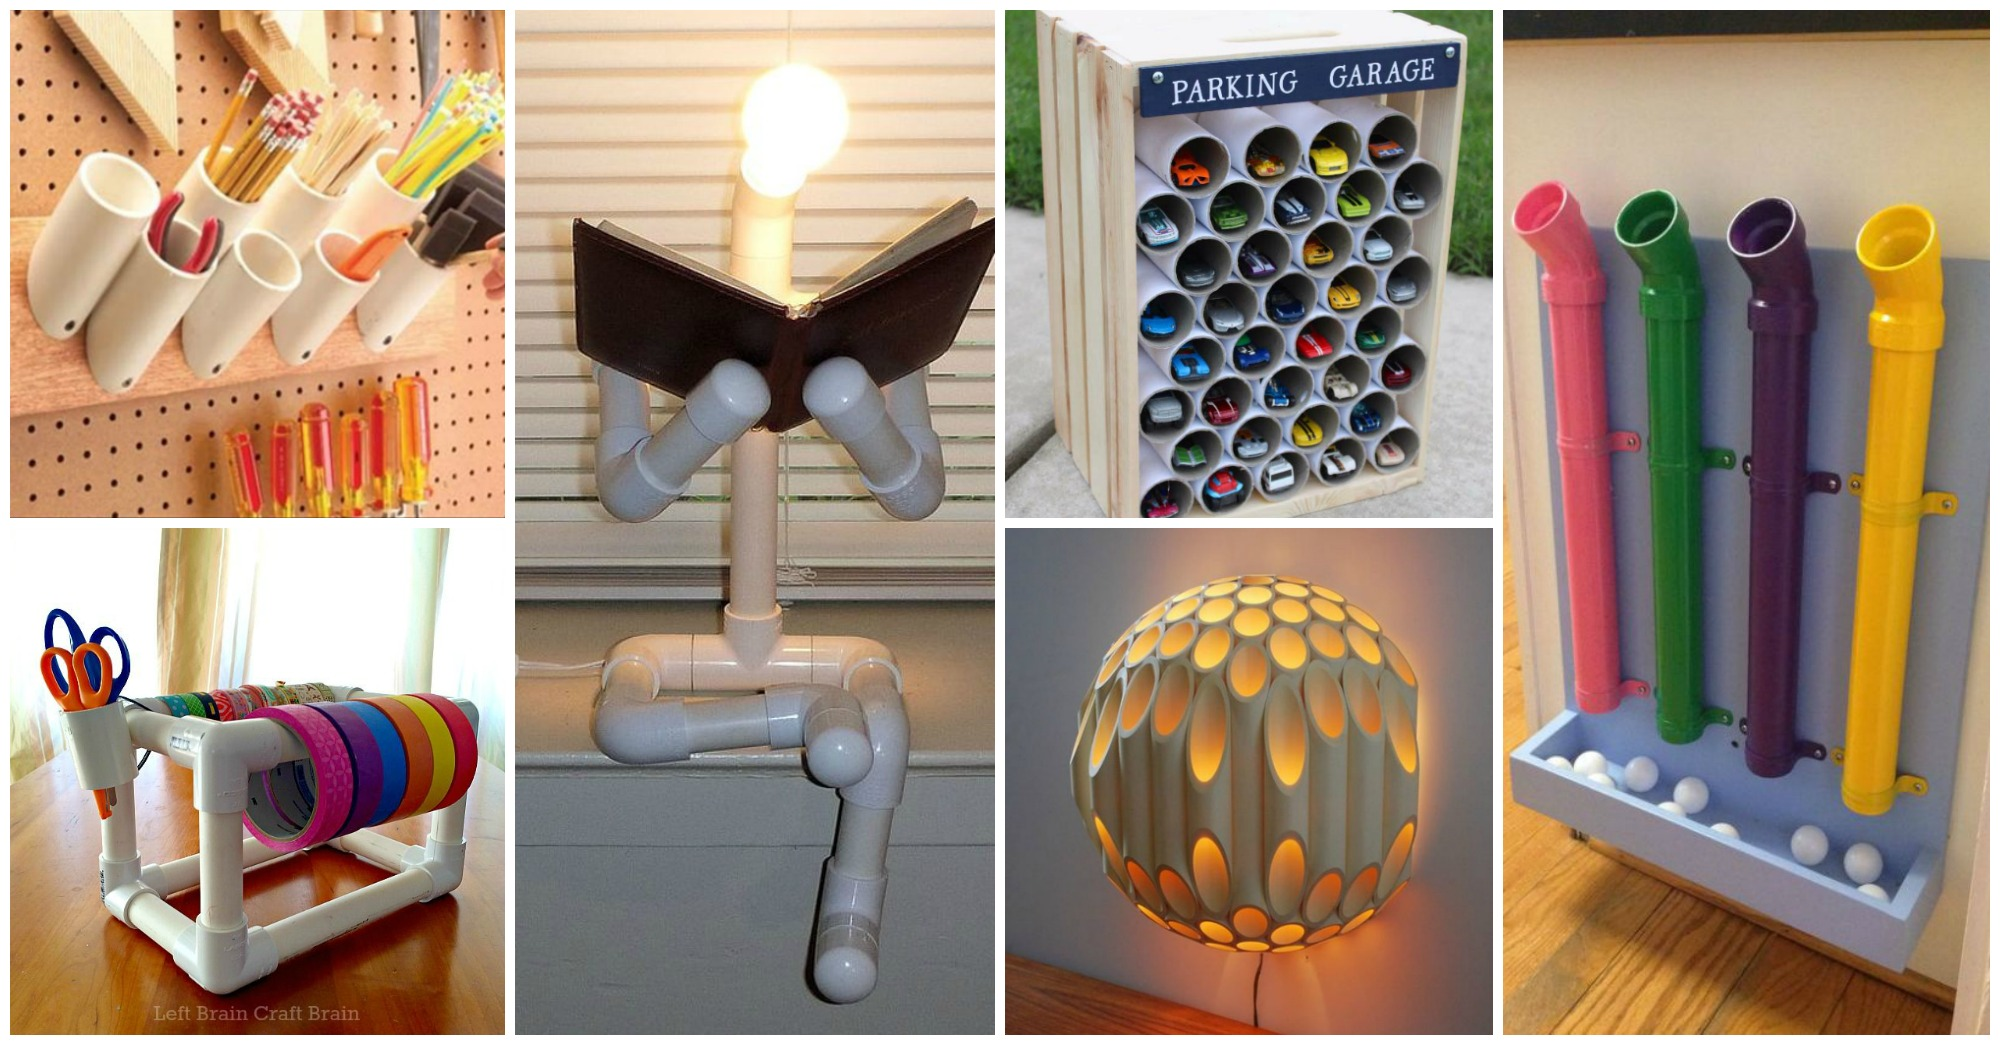 45 creative uses of pvc pipes in your home and garden - Creative digital art ideas for your home ...